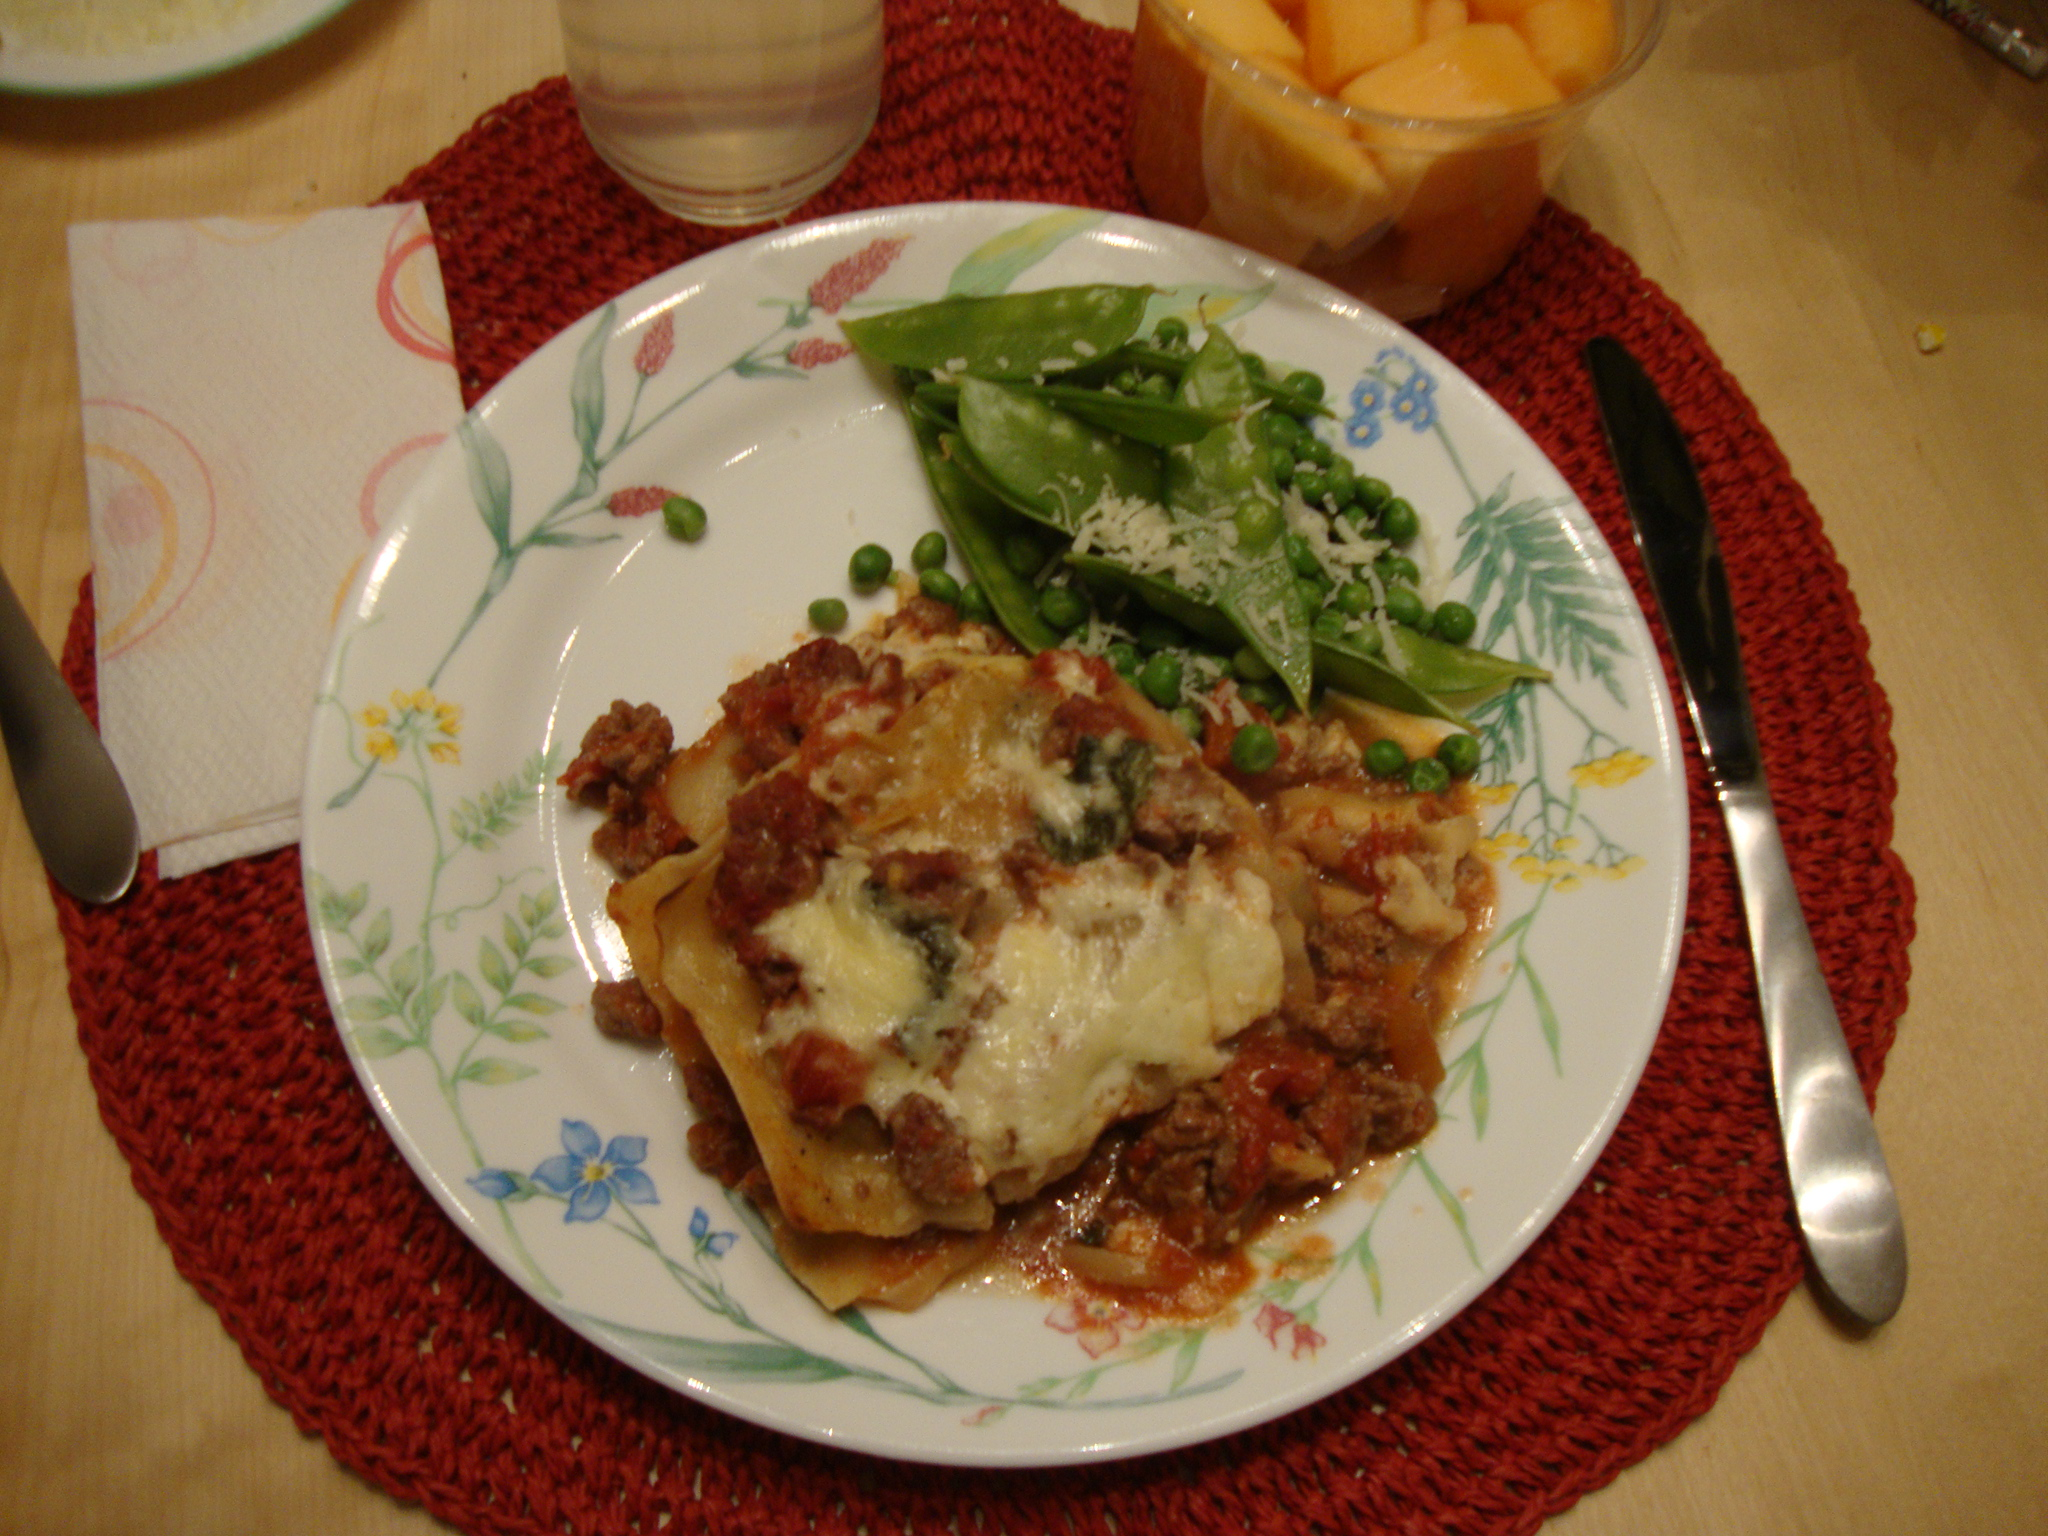 Lasagne bolognese from Rocco DiSpirito's Now Eat This Italian with snaps & peas